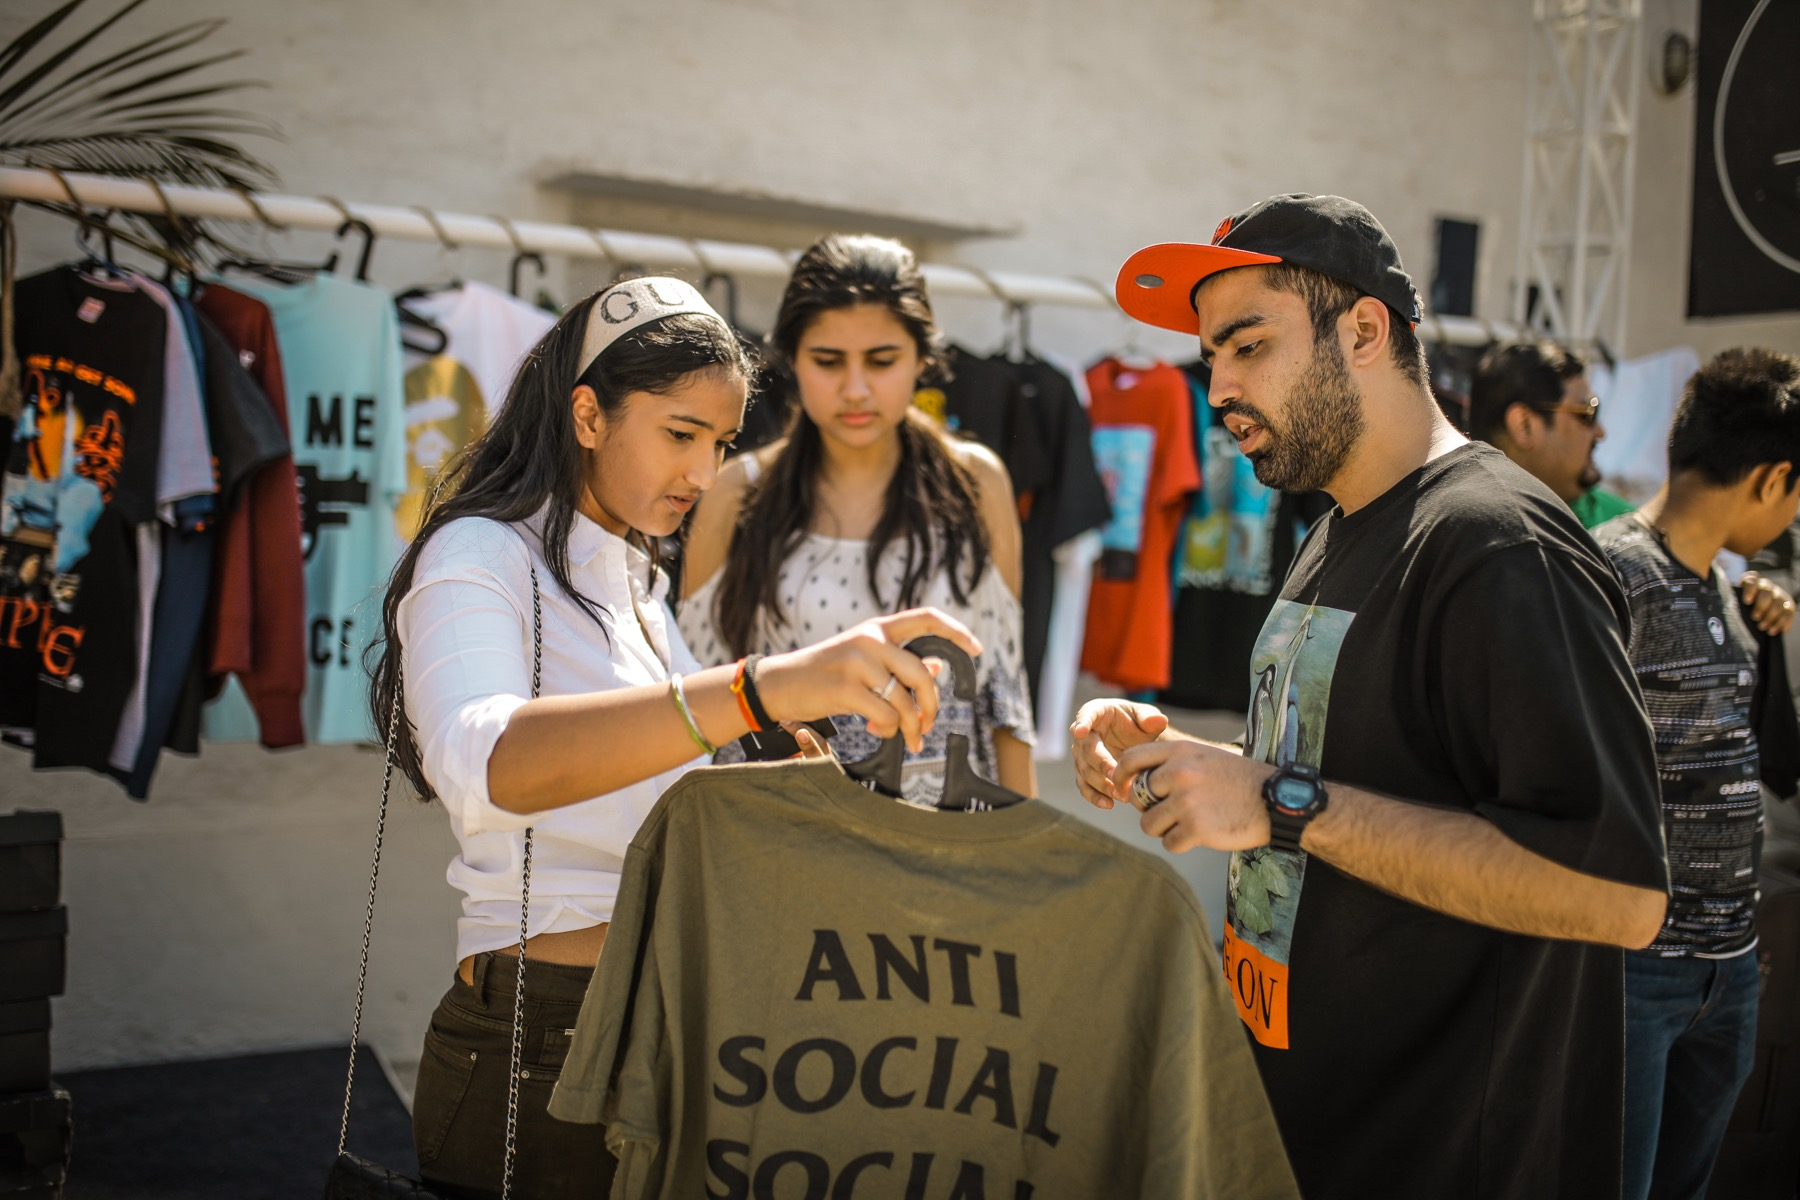 Homegrown India presents HGStreet in Mumbai on March 18, 2018, a celebration of sneaker and street culture - Shopify Homegrown Pop-Up Shops featuring streetwear brands976A5612.jpg